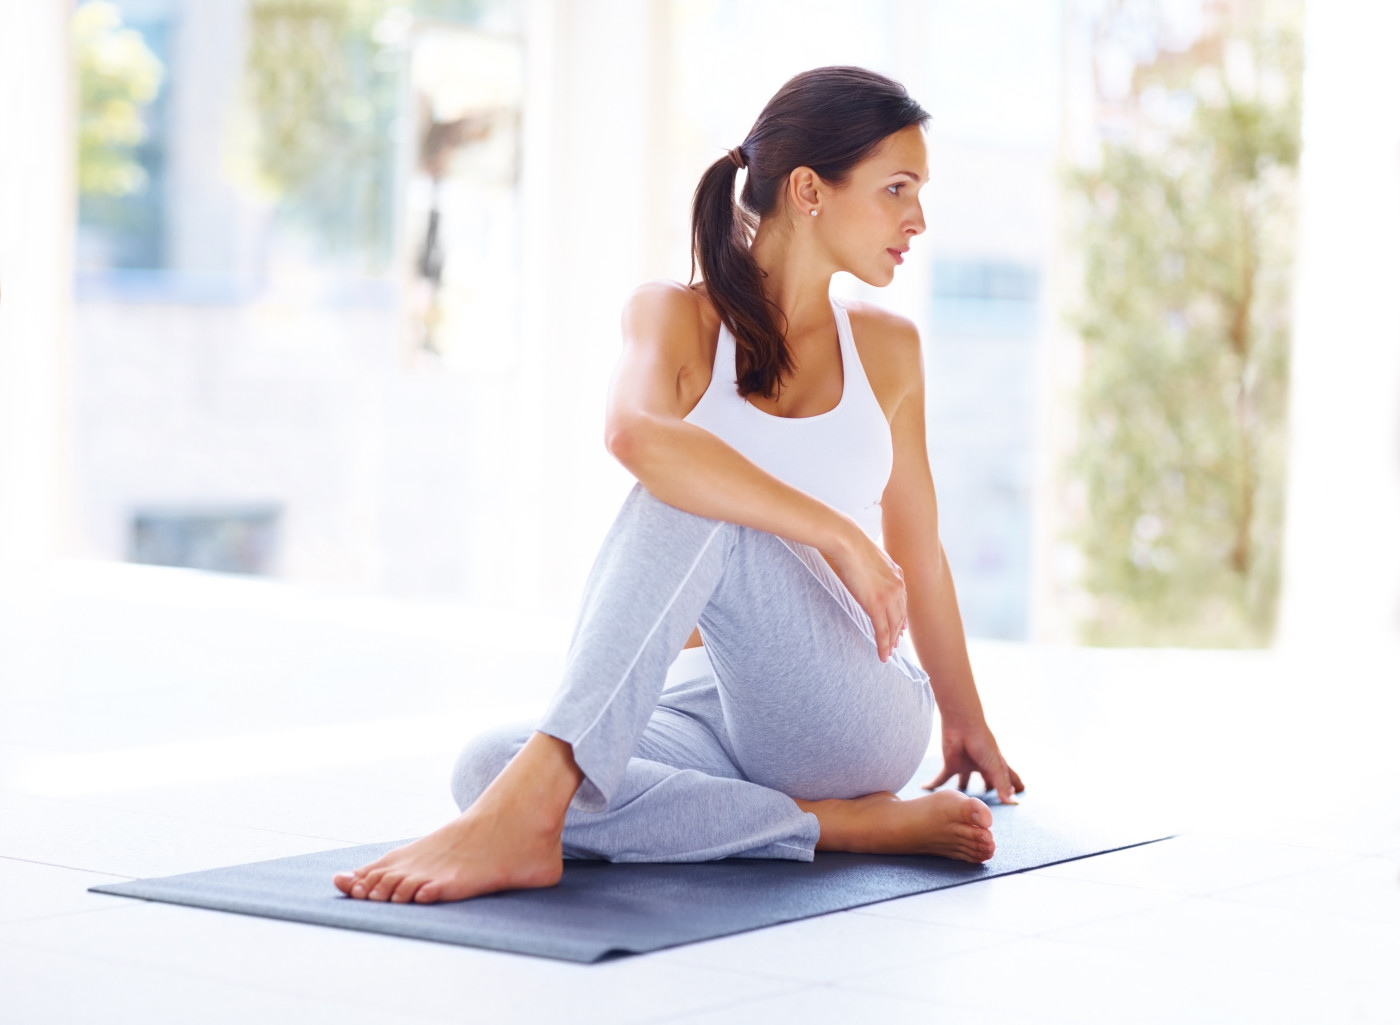 Portrait of healthy young woman doing yoga - Spine twisting pose